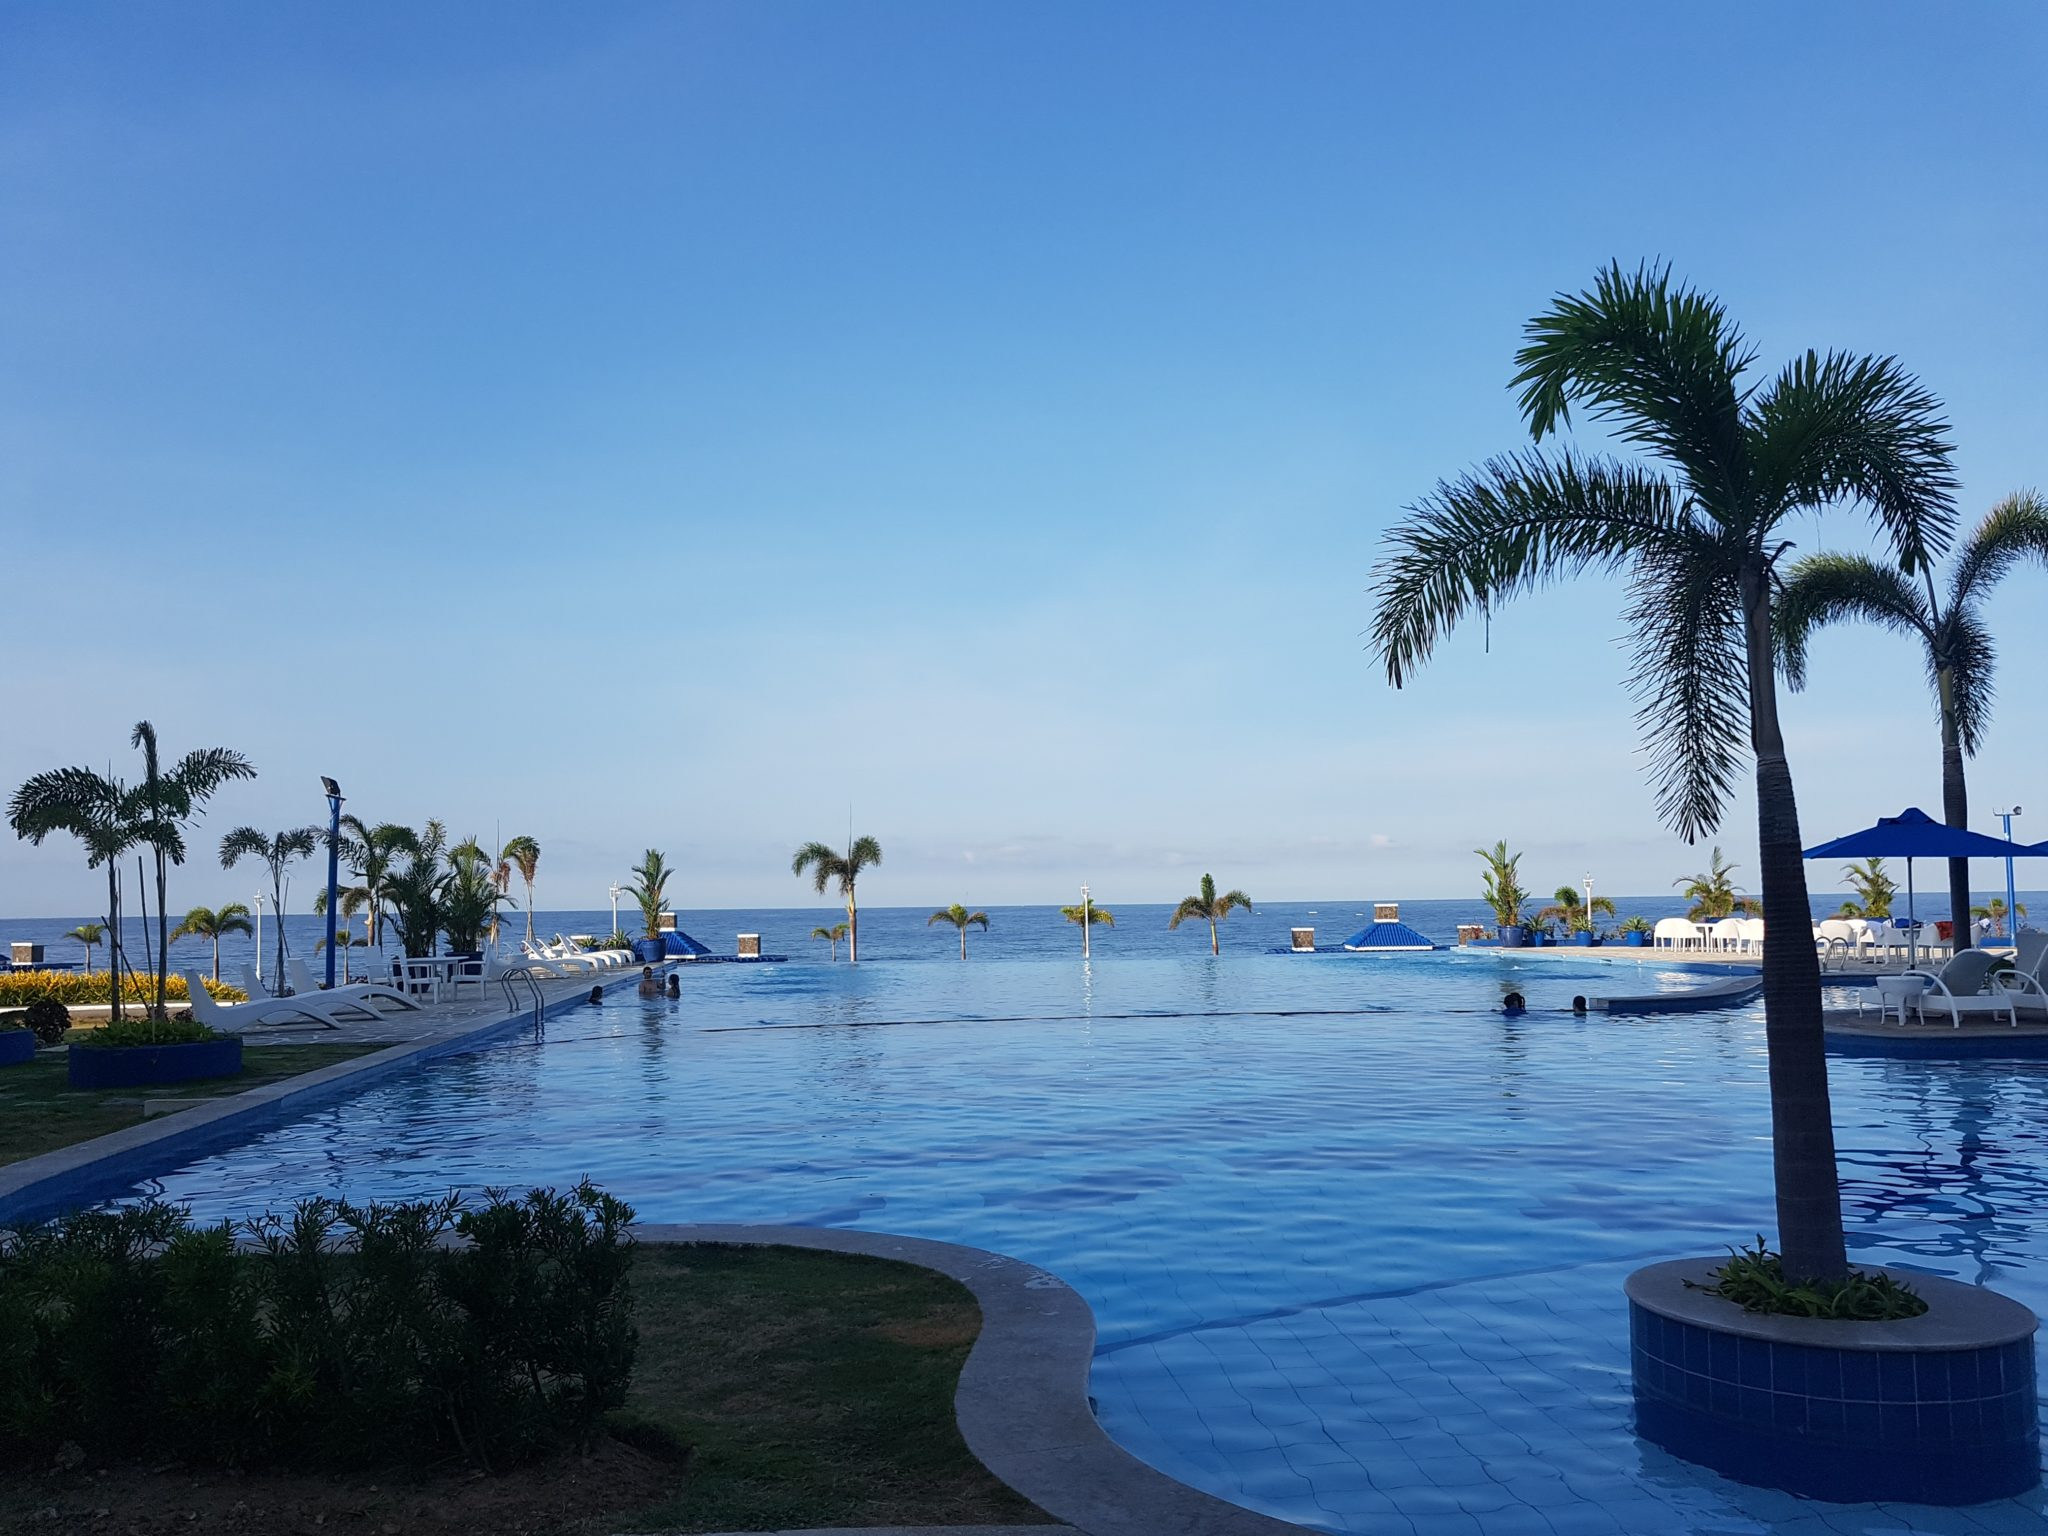 How To Get To Thunderbird Resorts And Casinos  Poro Point